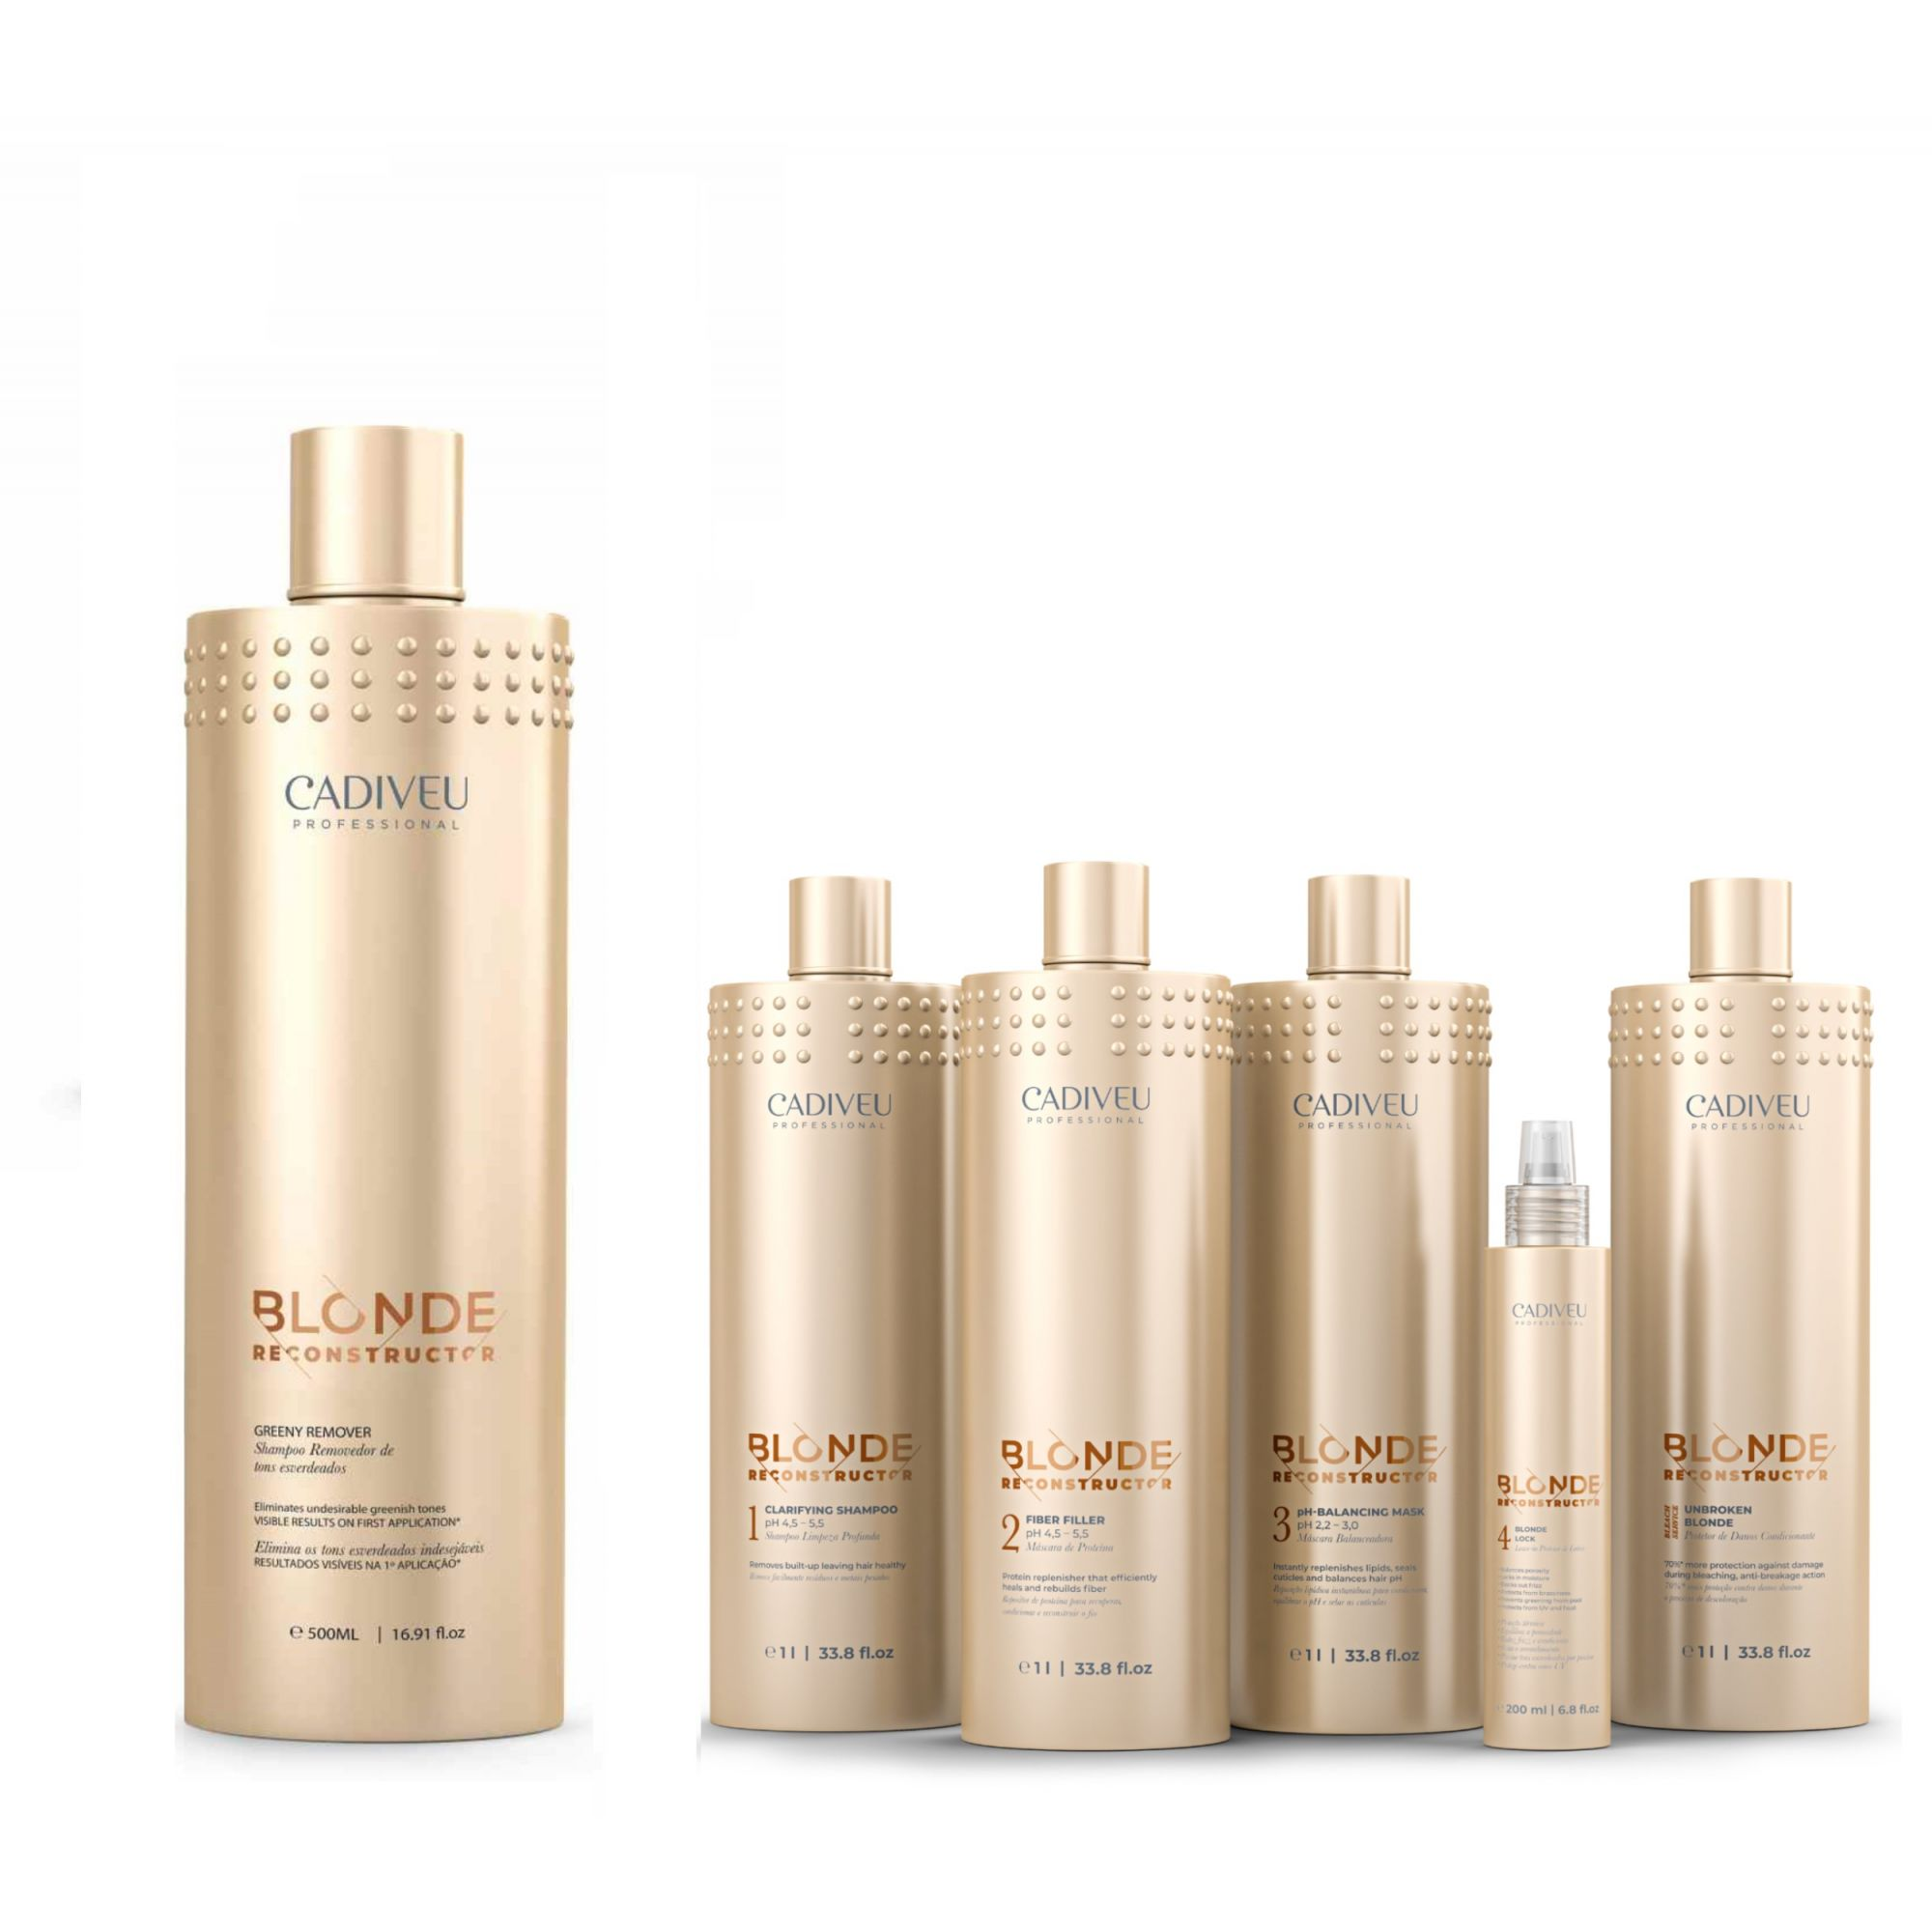 Kit Greeny Remover + Kit Blonde Reconstructor